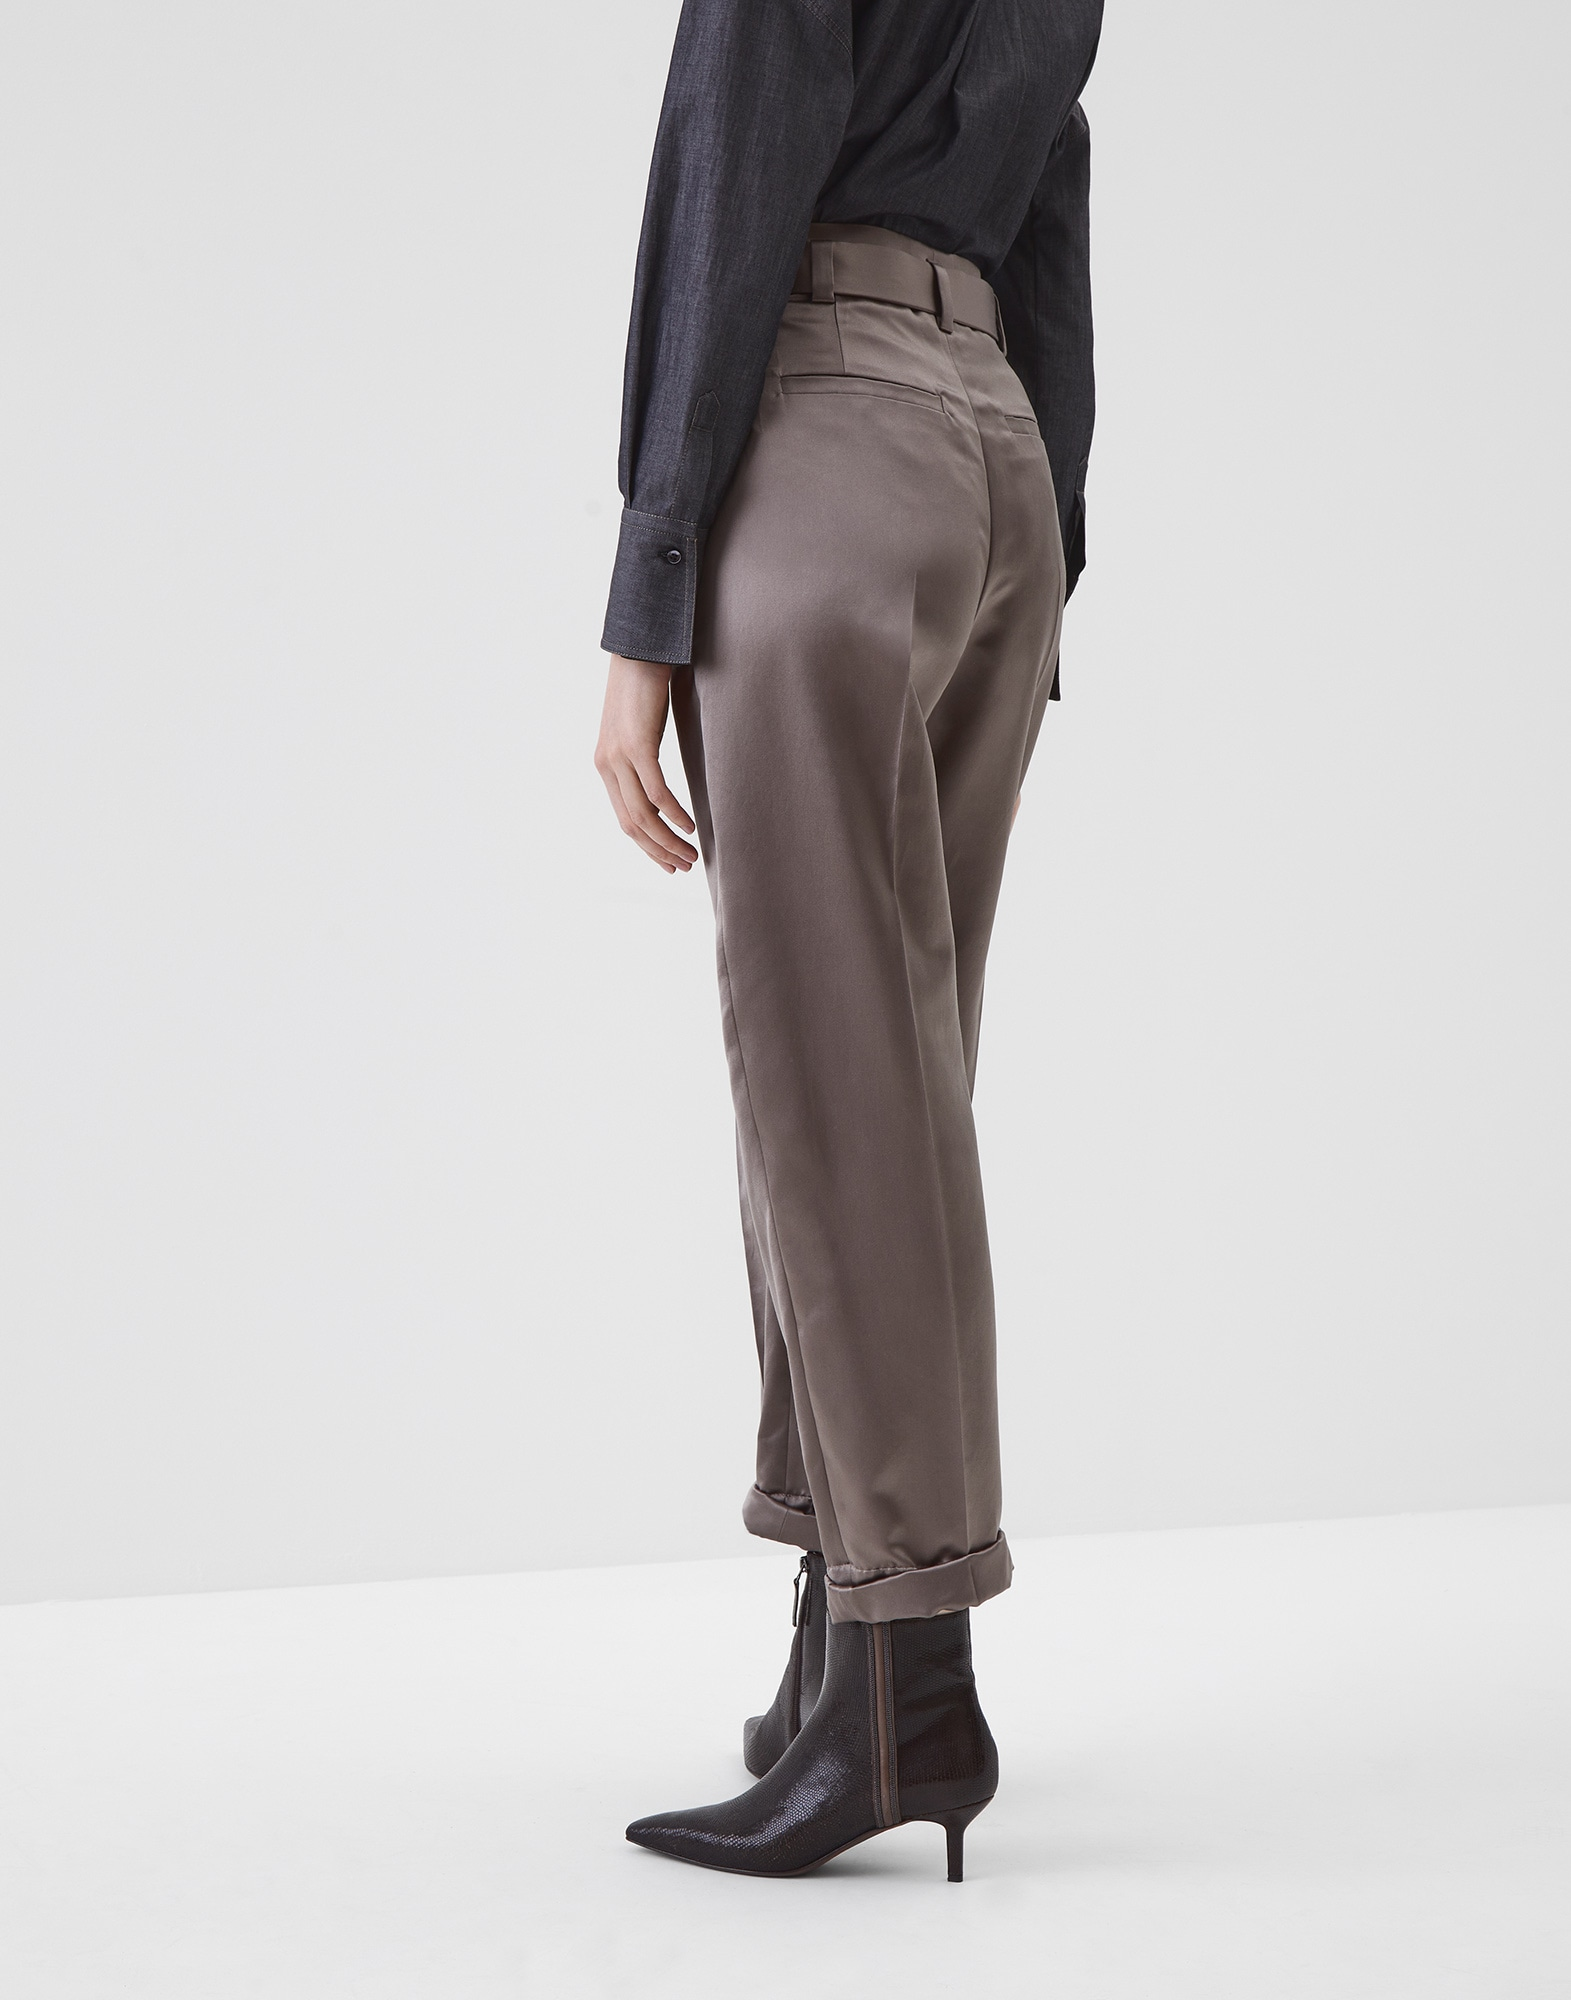 Trousers Mud Woman 1 - Brunello Cucinelli